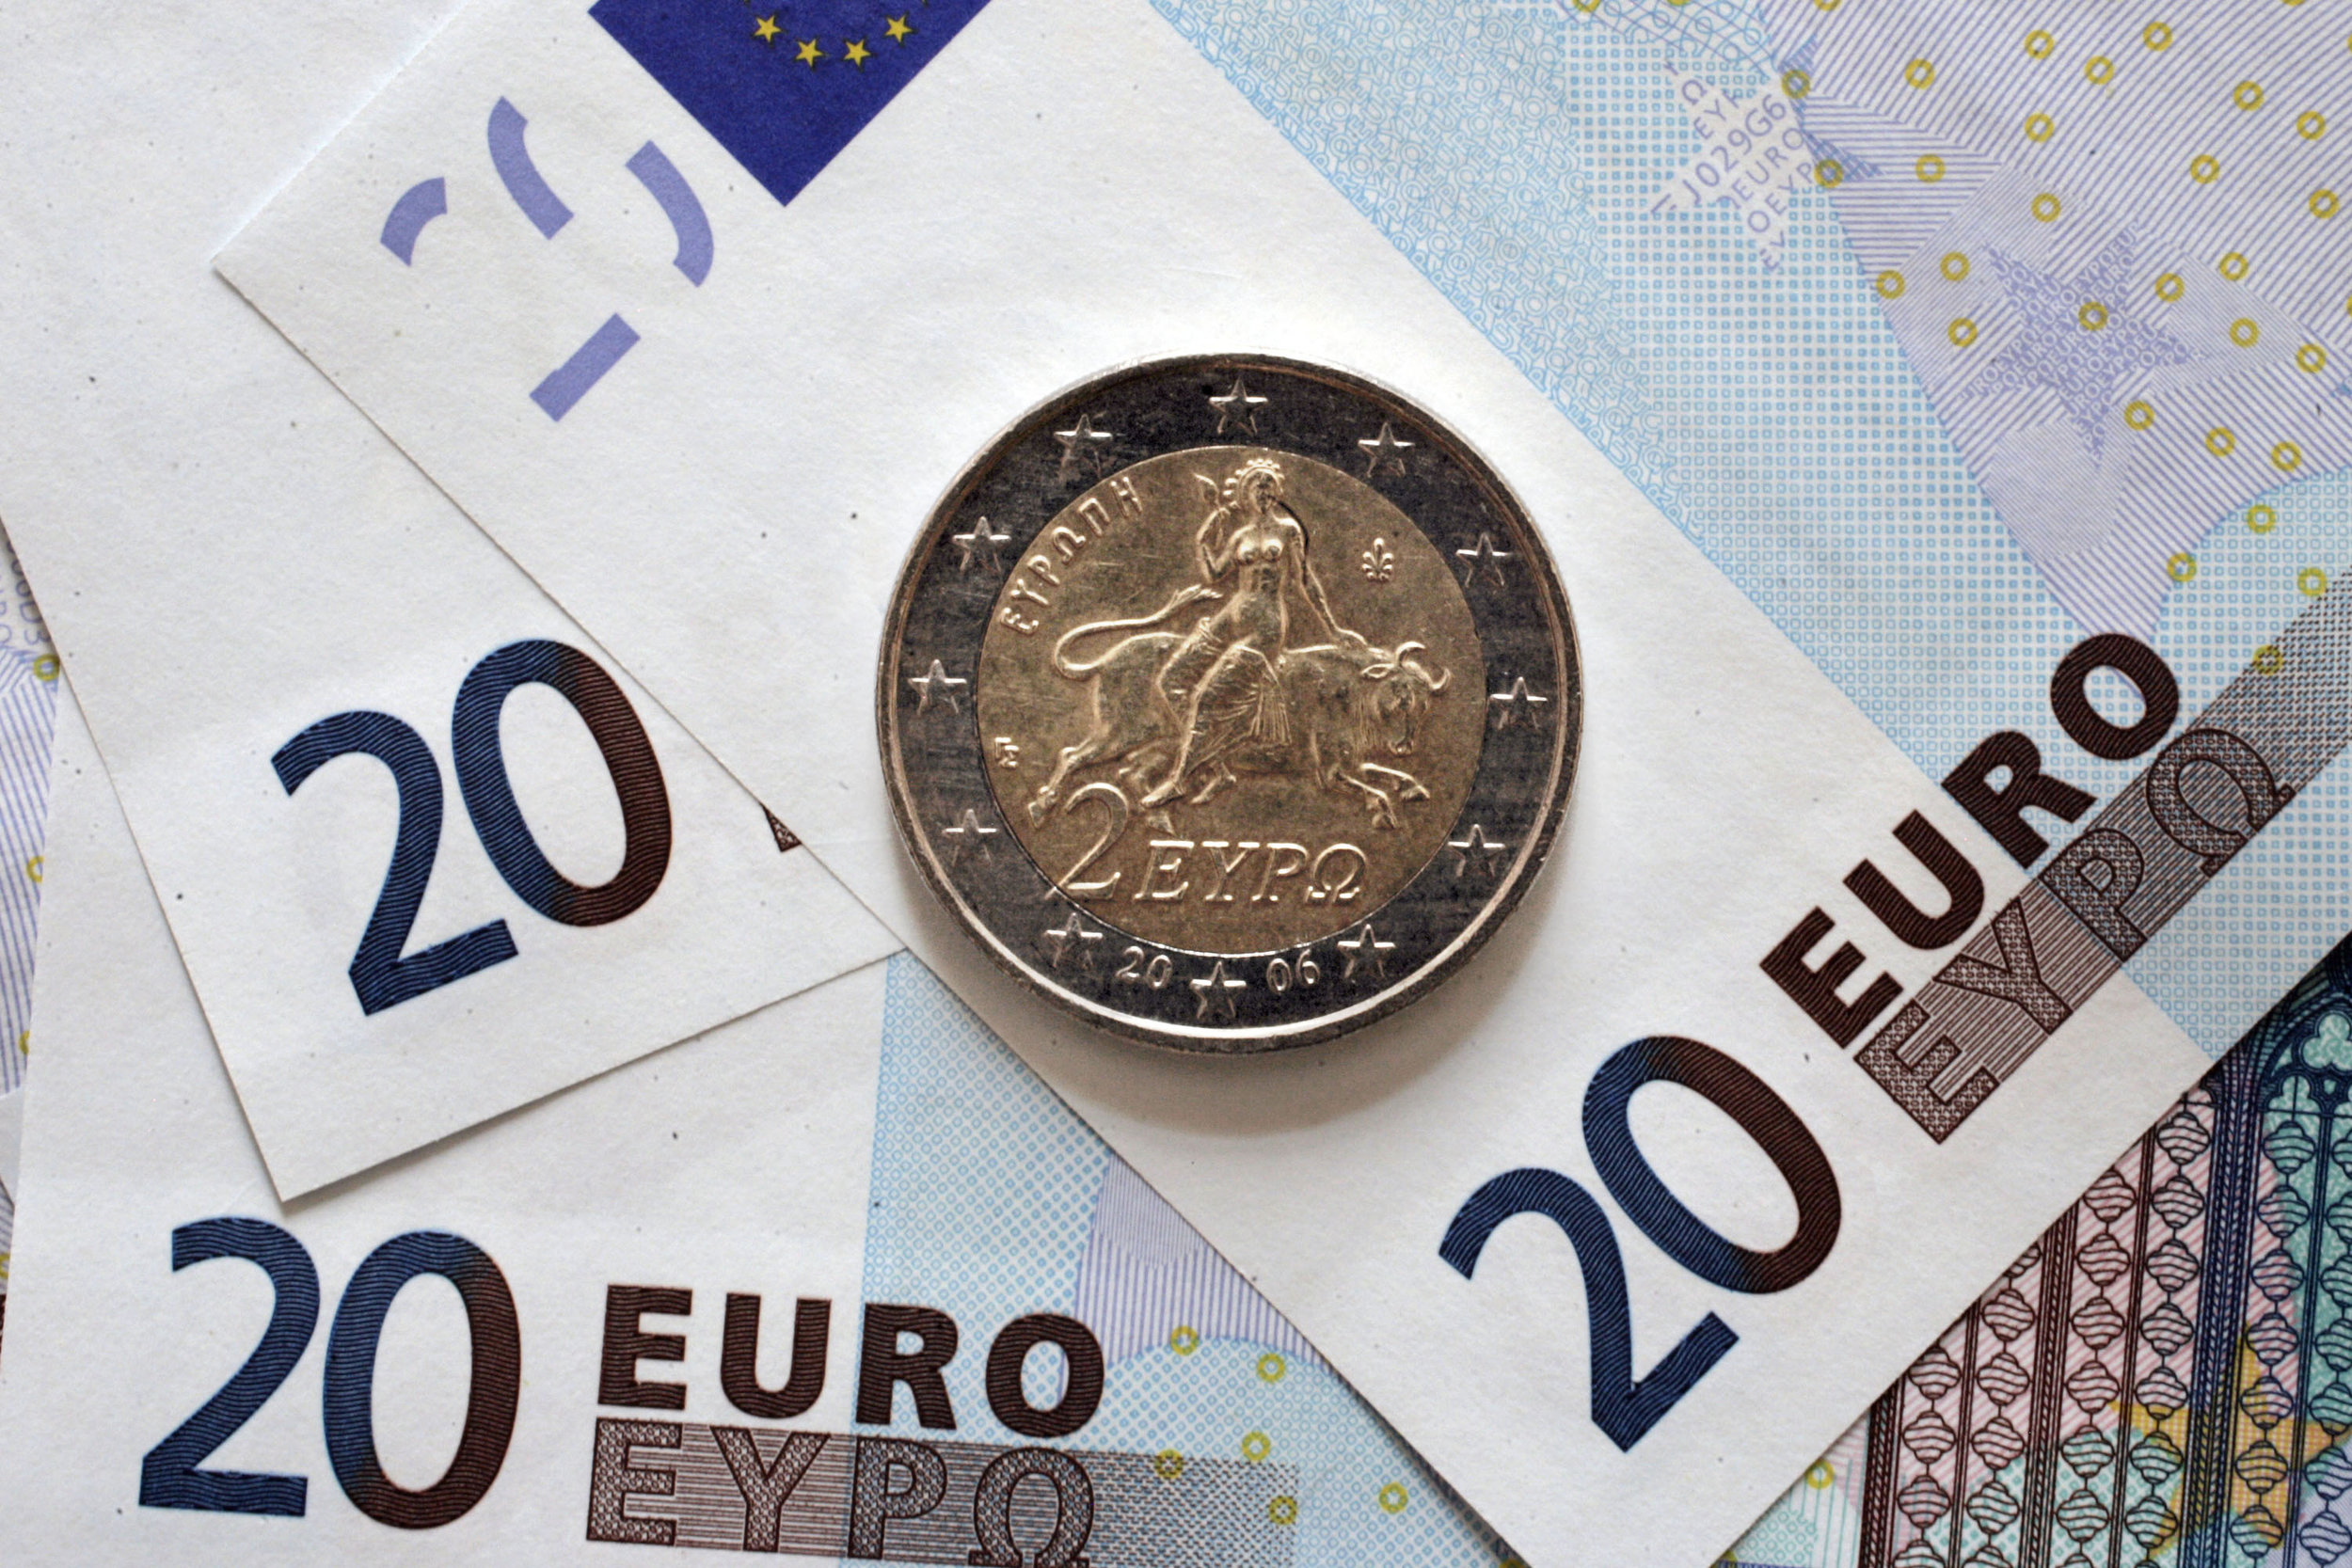 Euro After the Crisis: - Key Challenges and Resolution OptionsBy Dr Constantin GurdgievCommissioned by Luke Ming Flanagan MEP